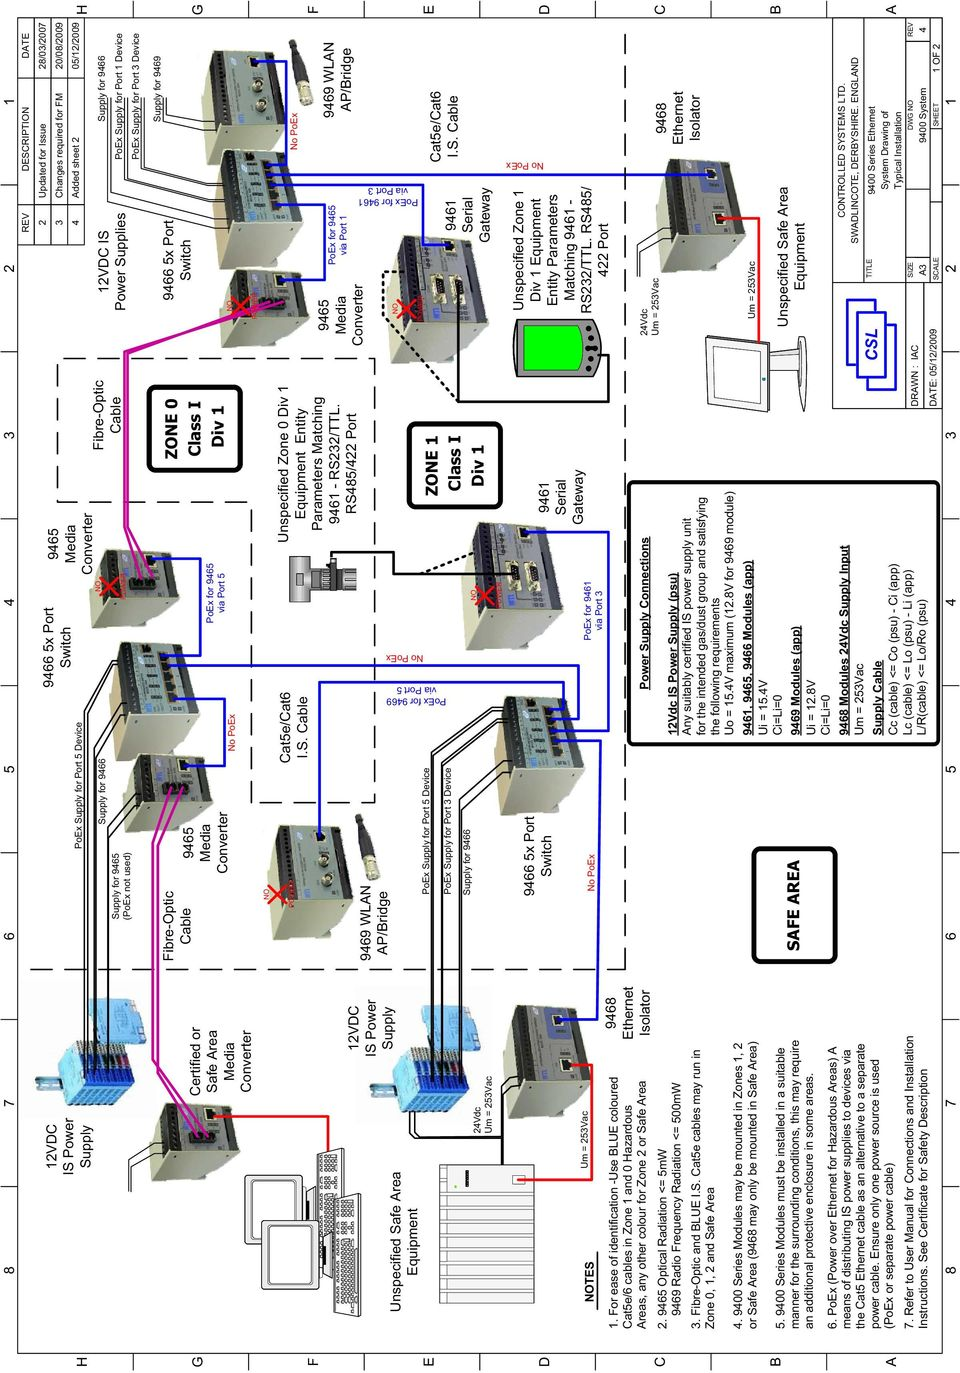 hight resolution of supply for port 3 device unspecified safe area equipment certified or safe area media converter 12vdc 10 h g f e d c b a note rj45